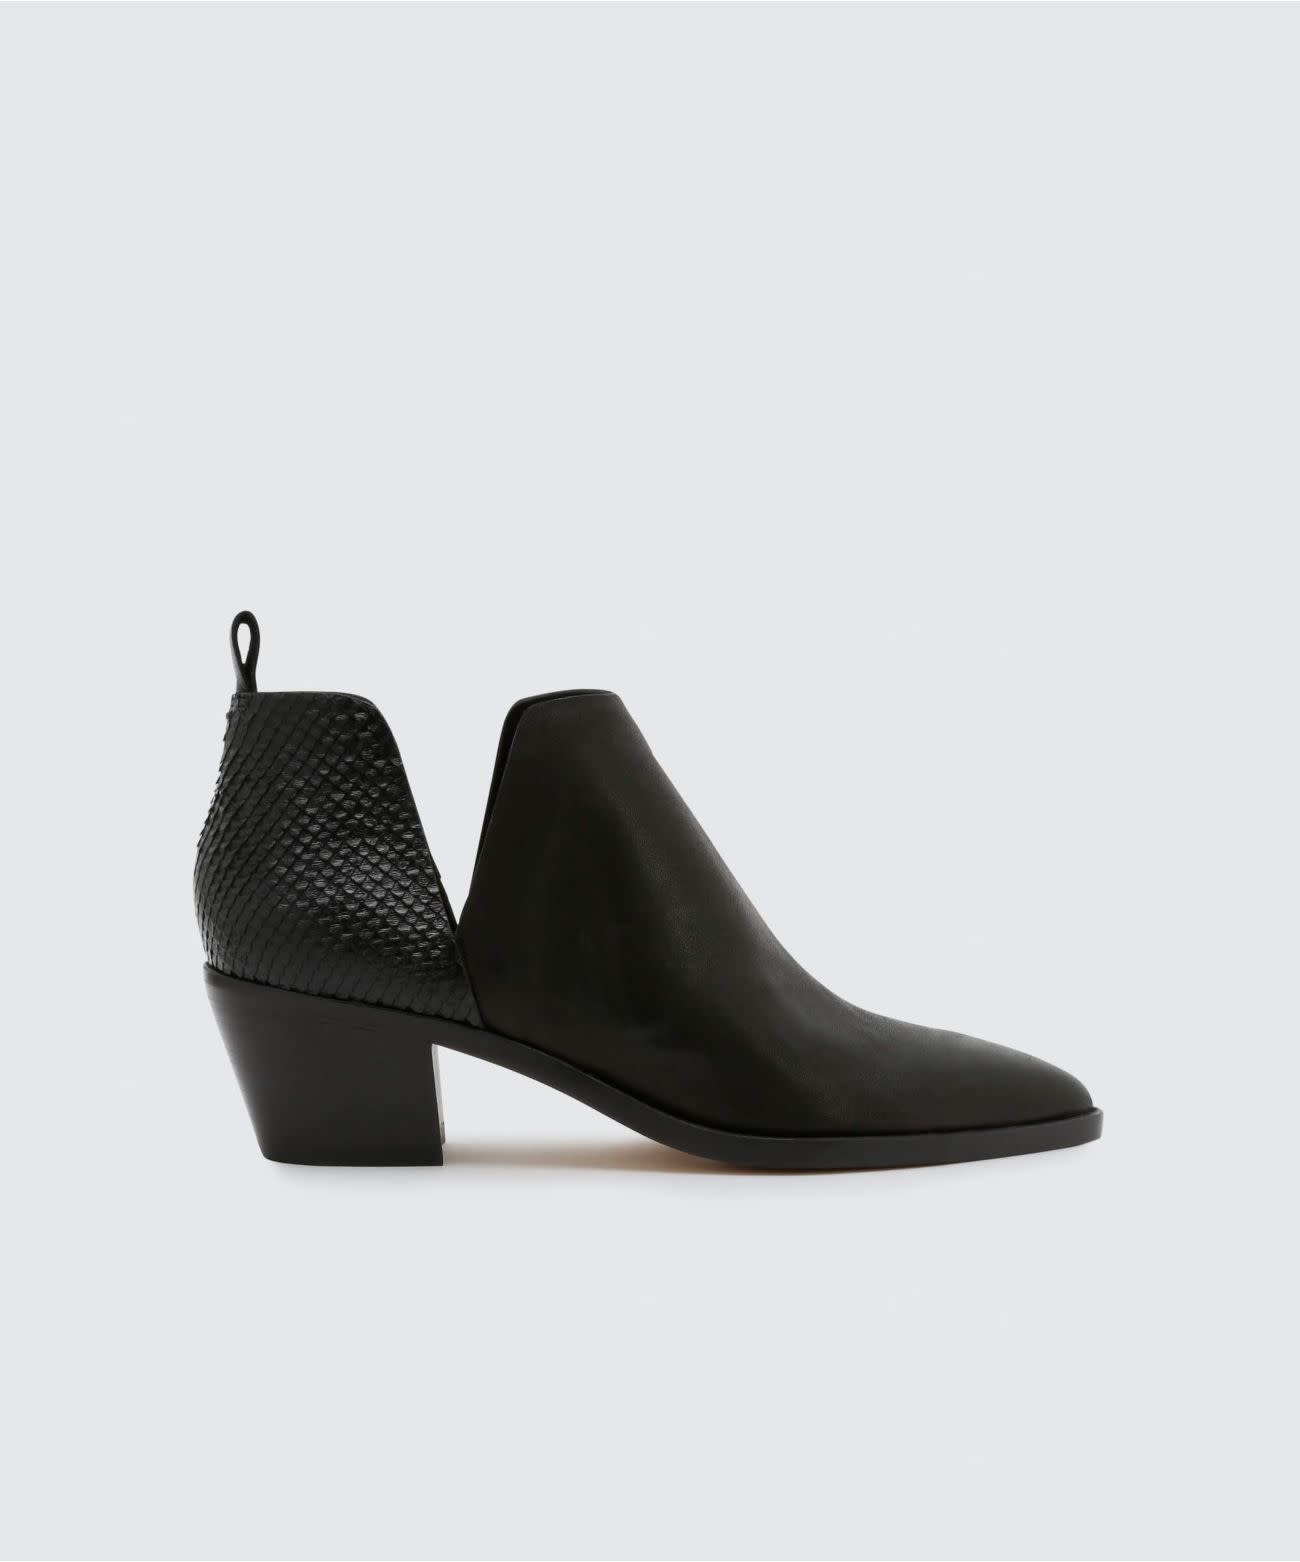 "DOLCE VITA DOLCE VITA ""SONNI"" SIDE CUT OUT BOOTIE"